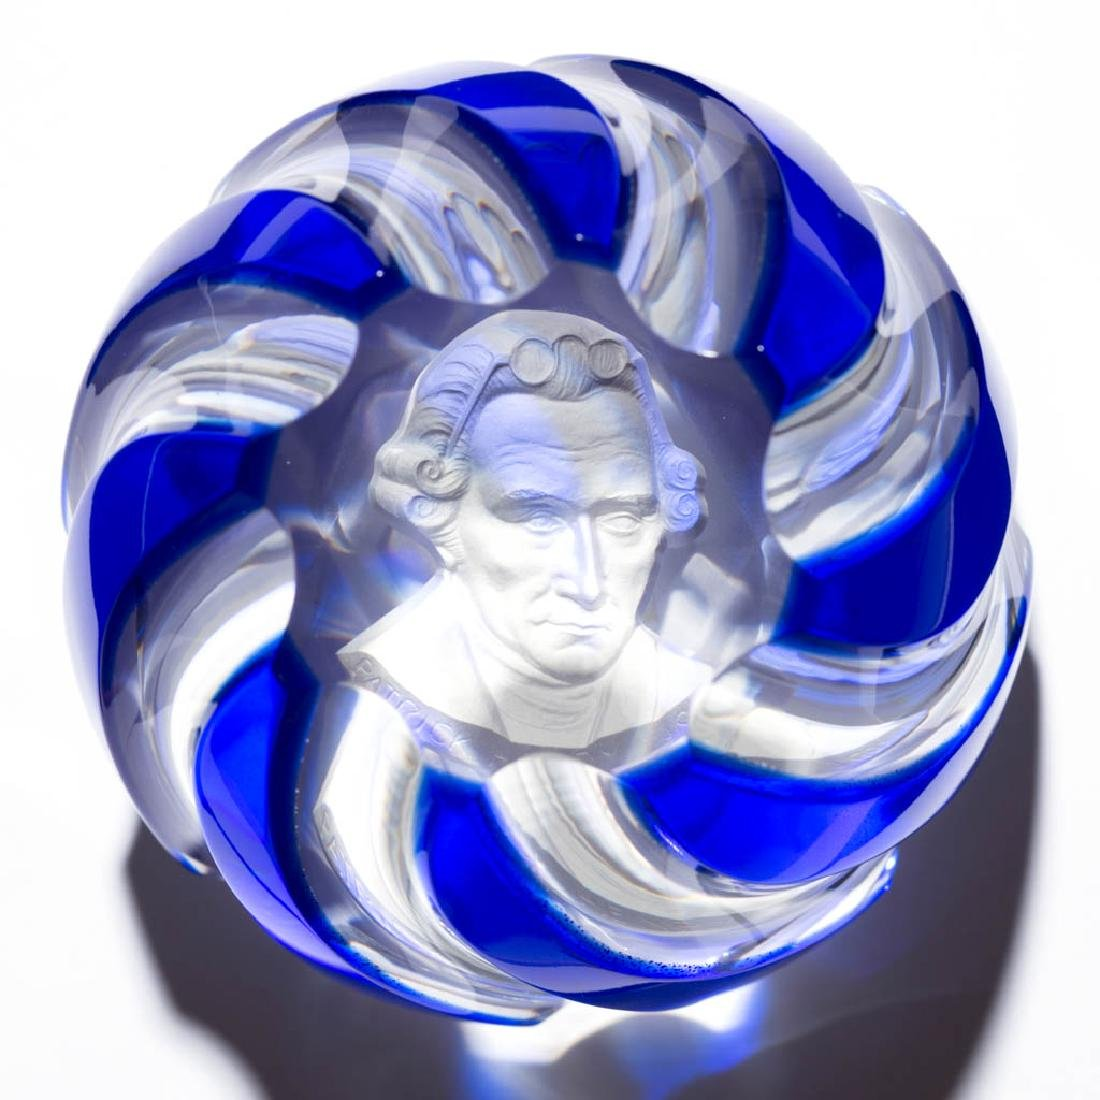 CONTEMPORARY BACCARAT PATRICK HENRY SULPHIDE OVERLAY